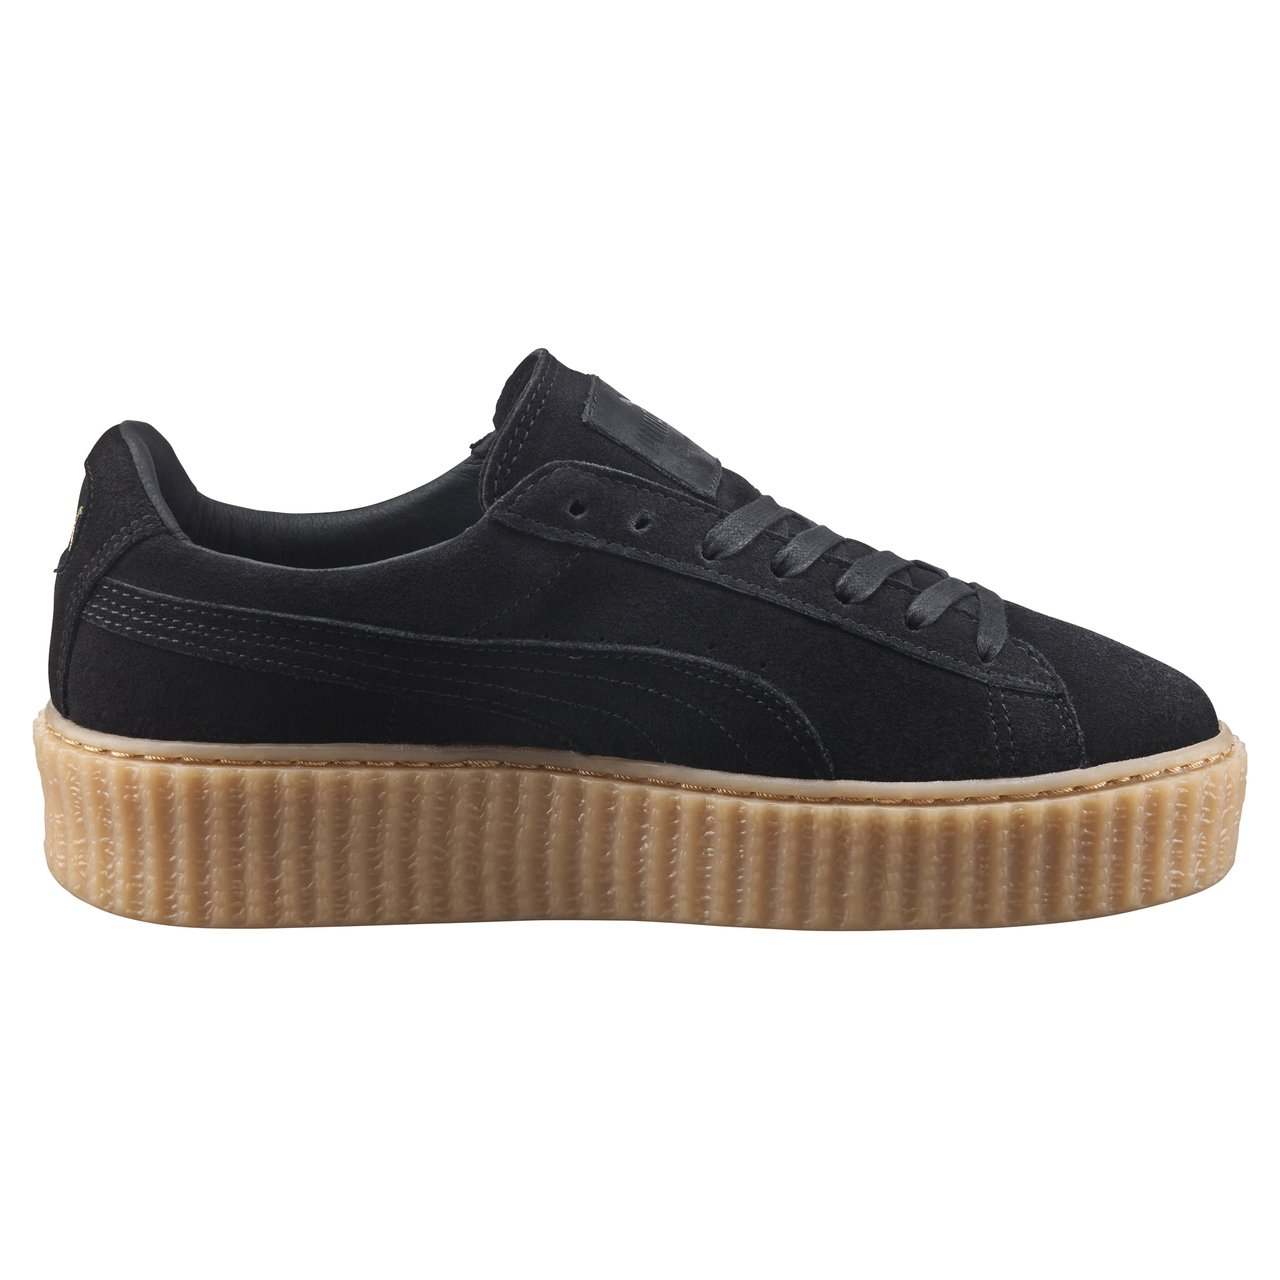 puma by rihanna women 39 s creeper in black lyst. Black Bedroom Furniture Sets. Home Design Ideas